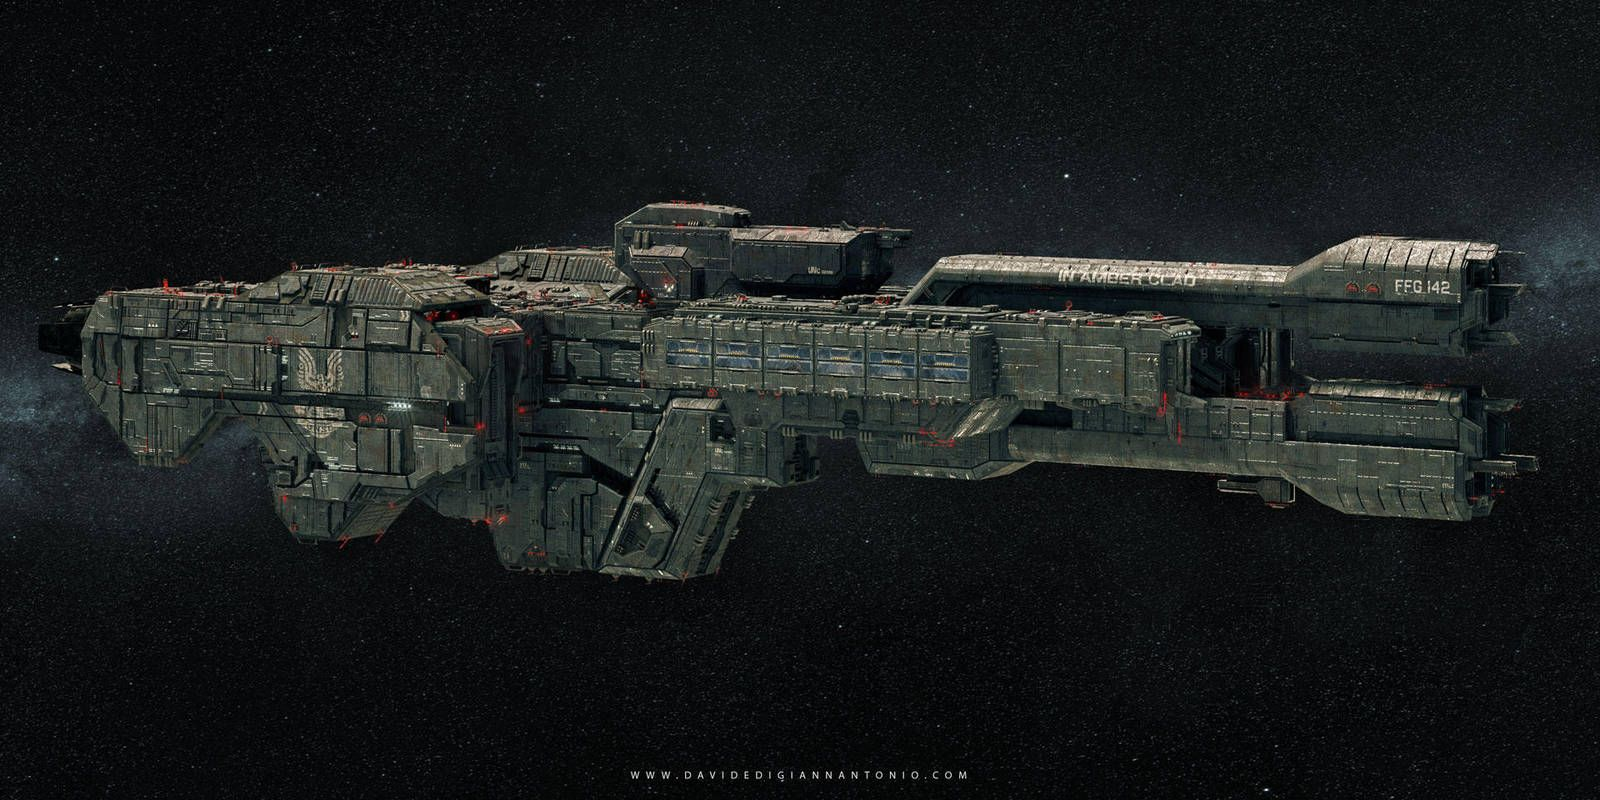 In Amber Clad 4 by lordsme (With images) Halo ships